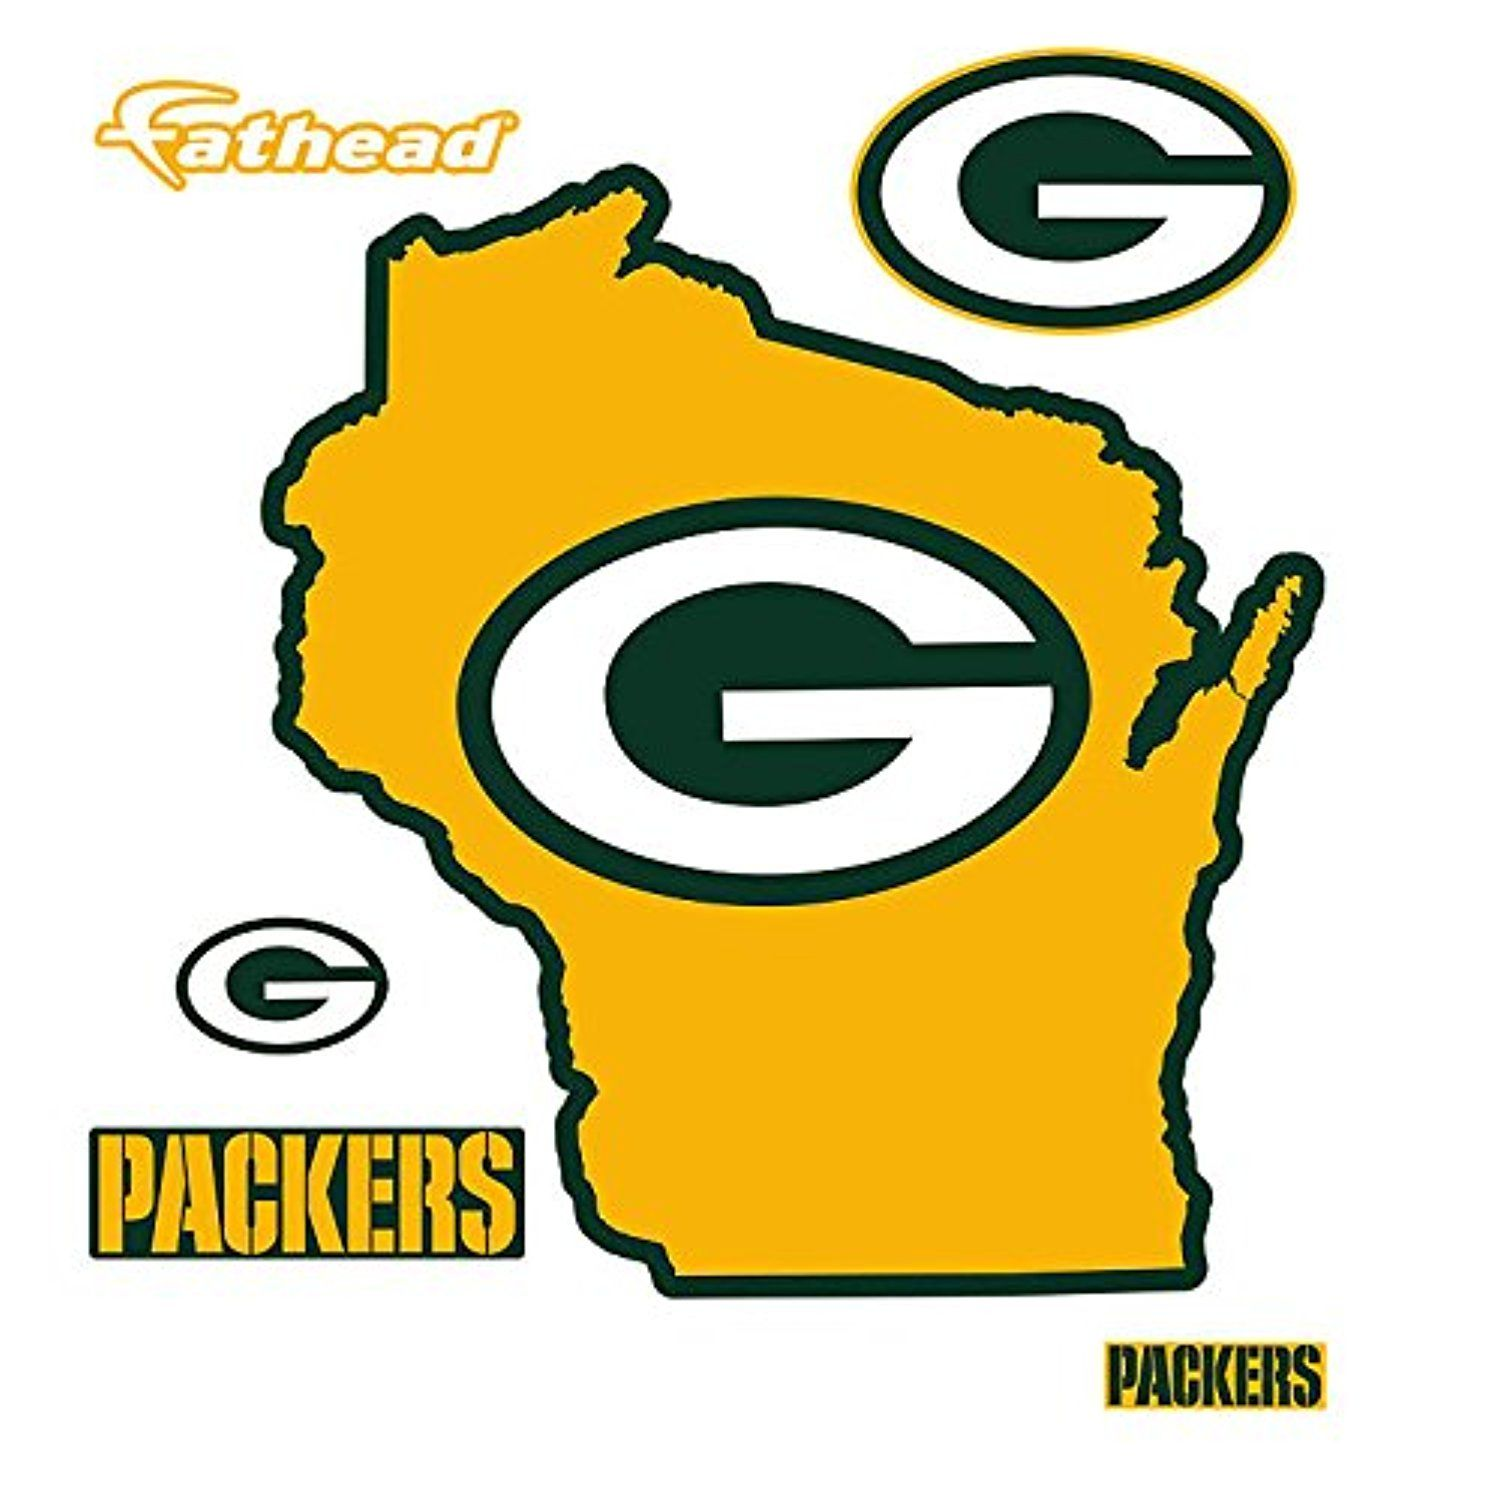 Green Bay Packers State Of Wisconsin Logo Wall Decal By Fathead 3 4 W X 3 7 H Awesome Products Selected By Anna Church Green Bay Packers Packers Green Bay